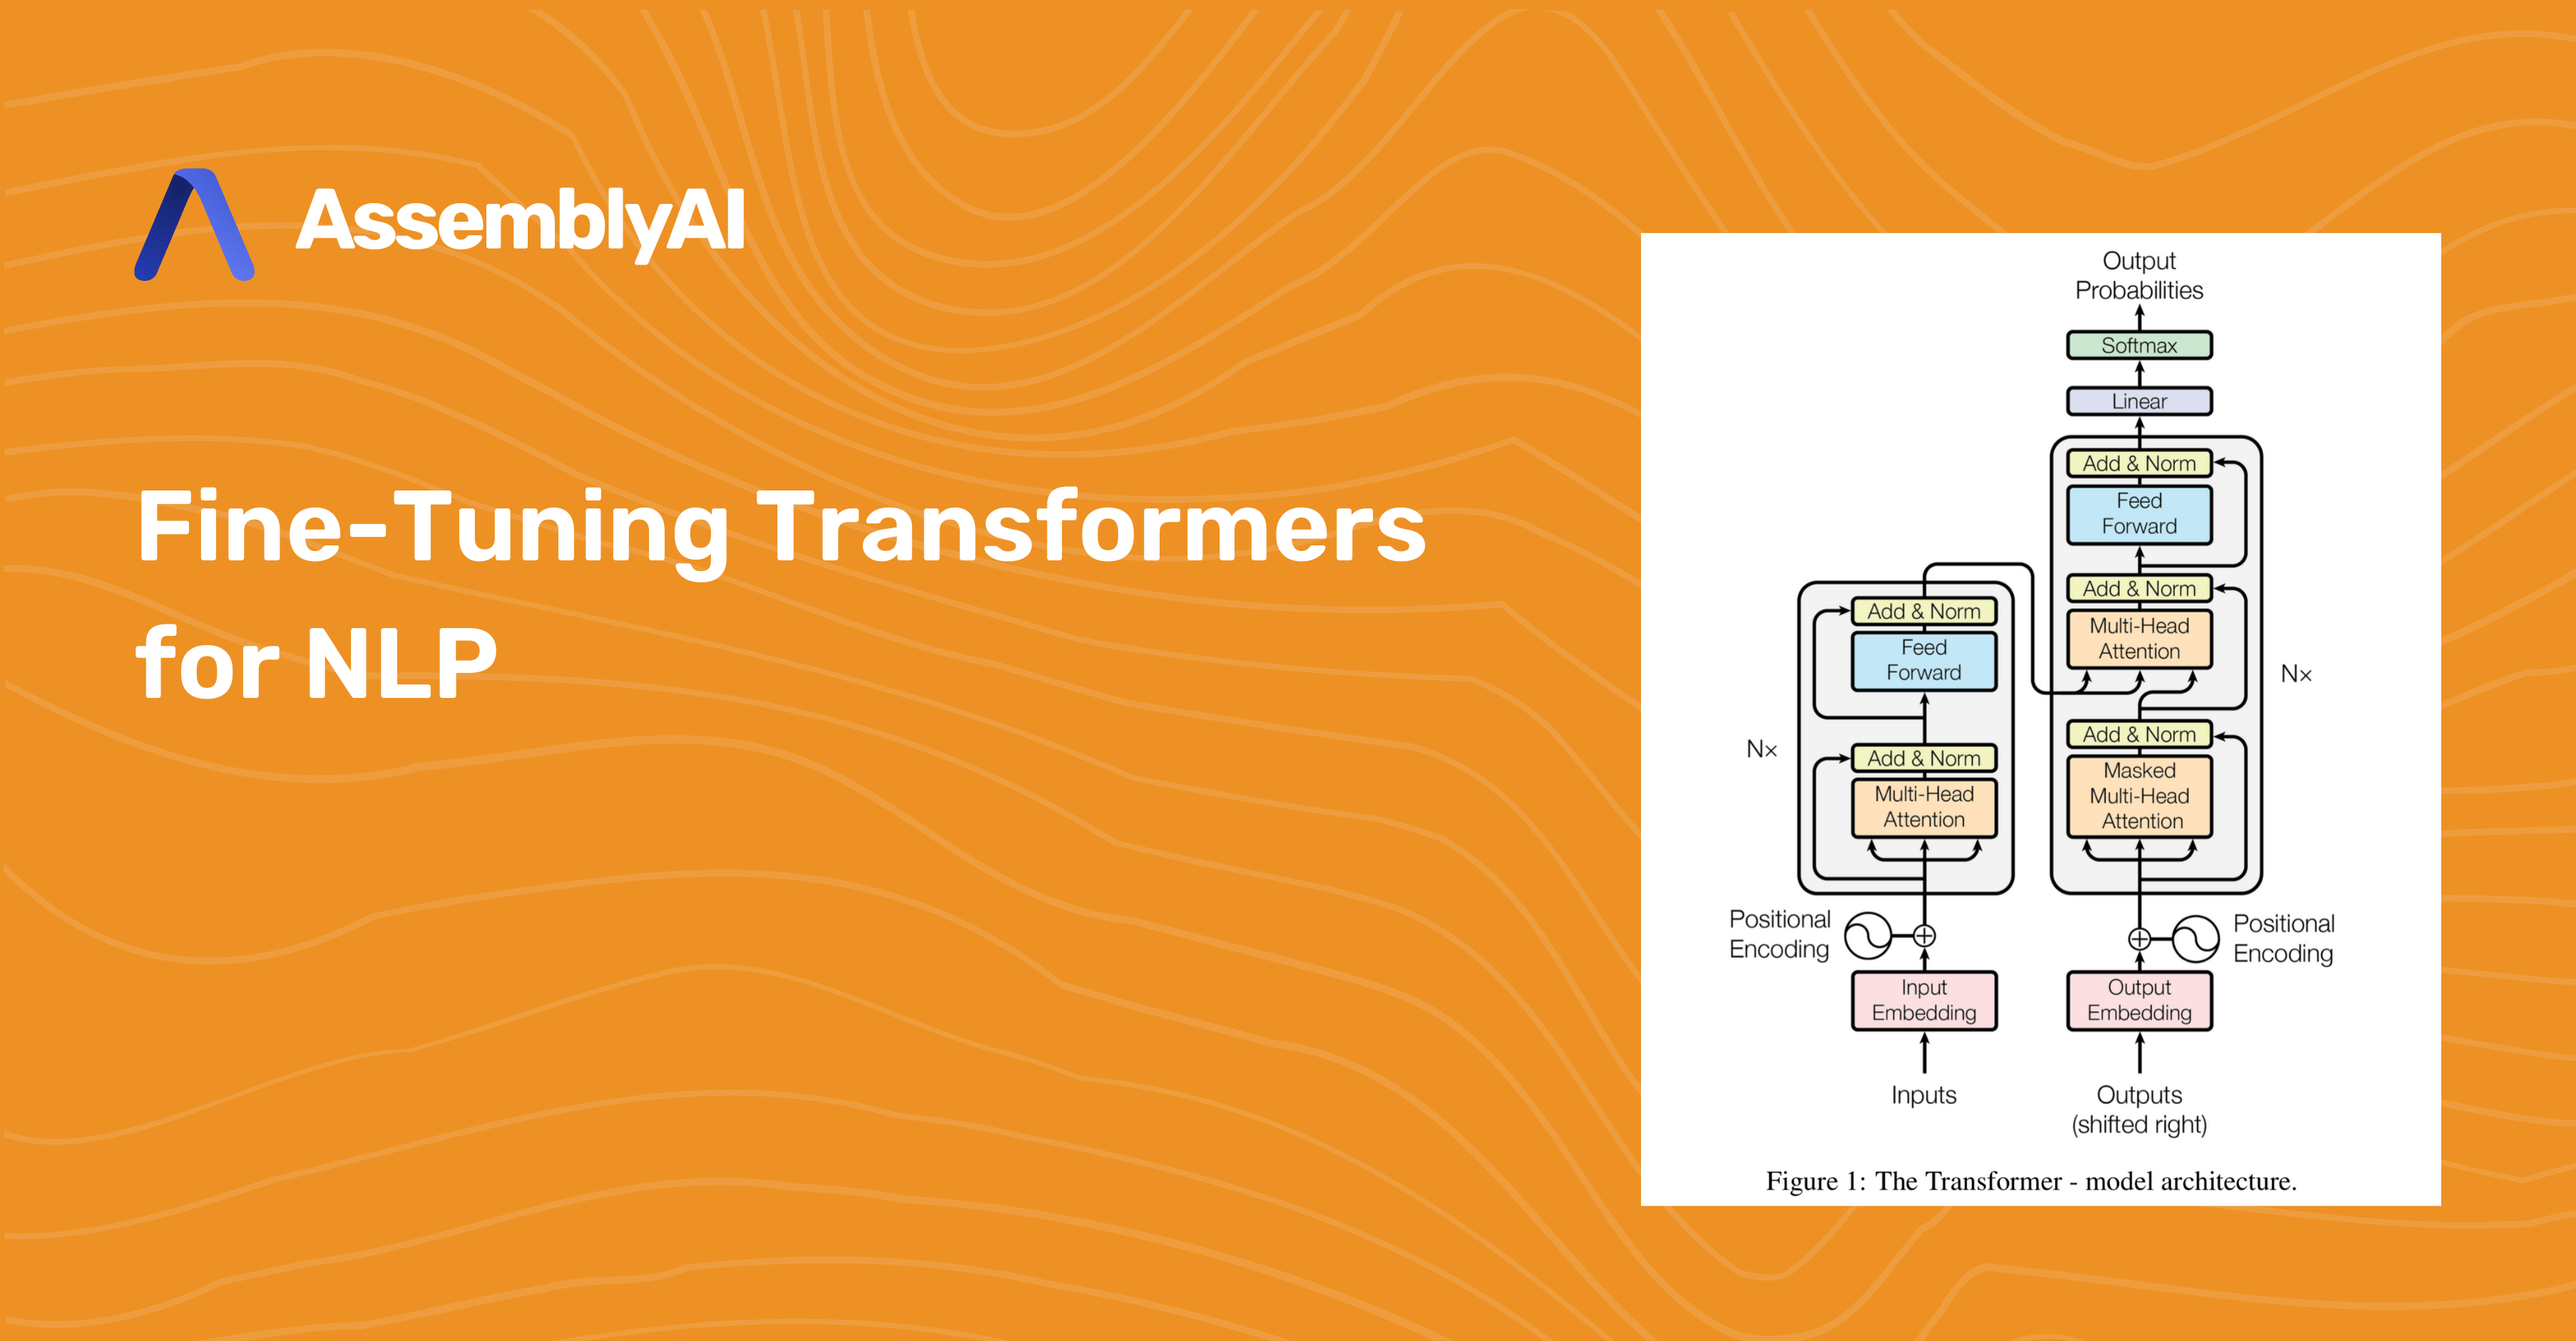 Fine-Tuning Transformers for NLP